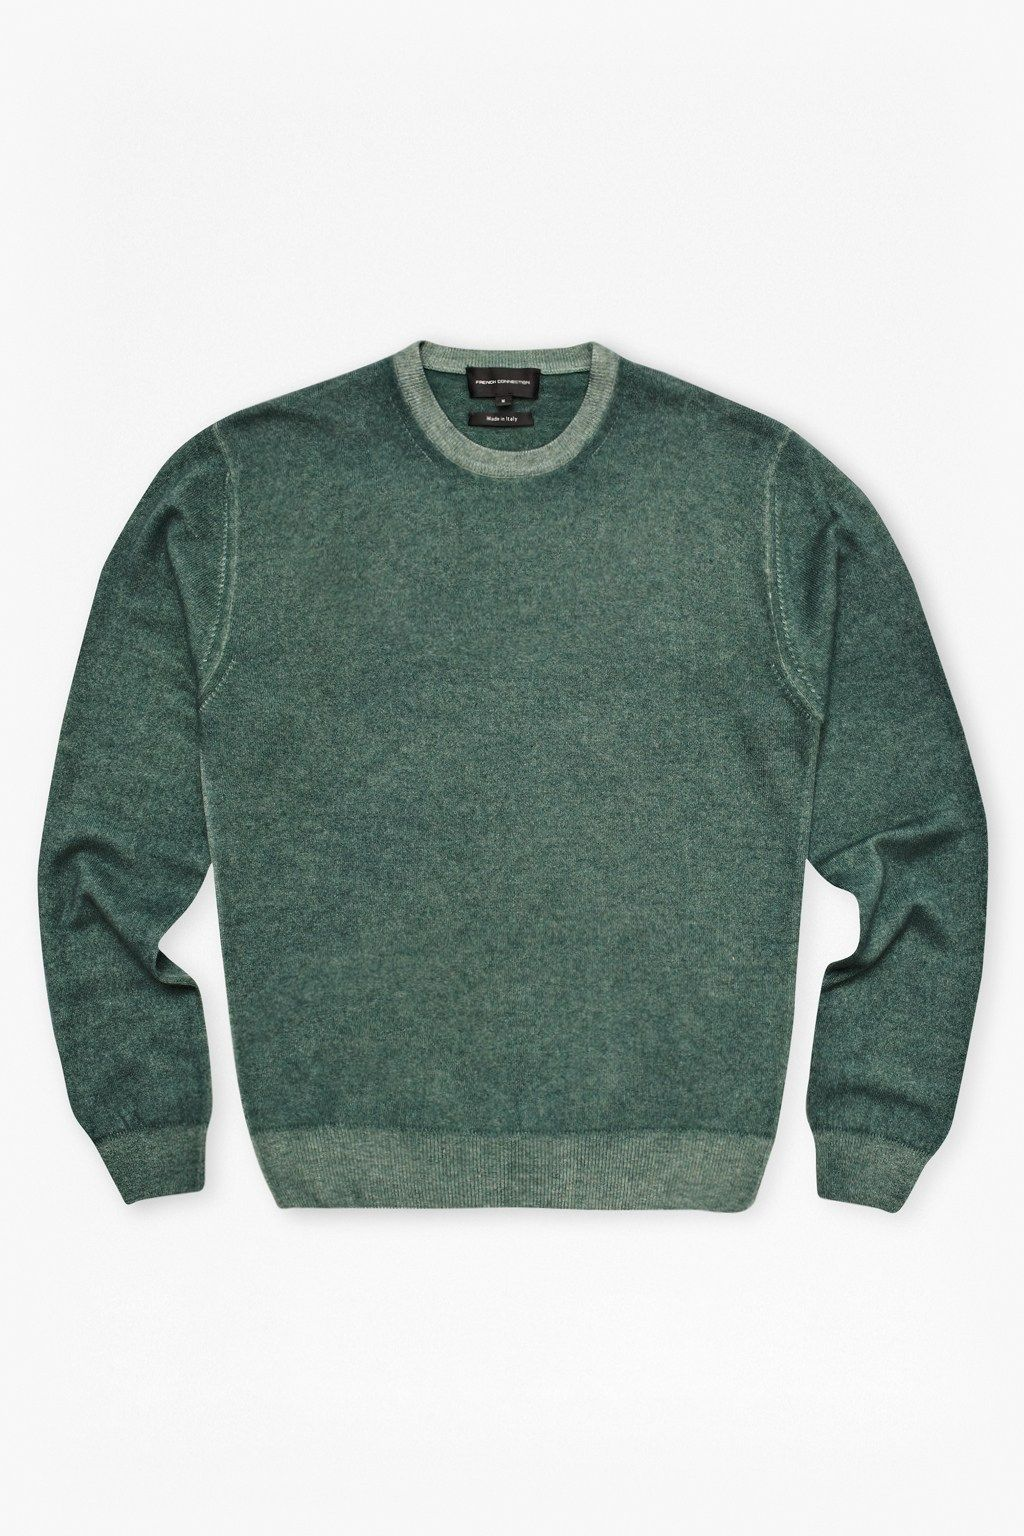 Ice Cashmere Jumper | Mens Jumpers & Cardigans | French Connection ...